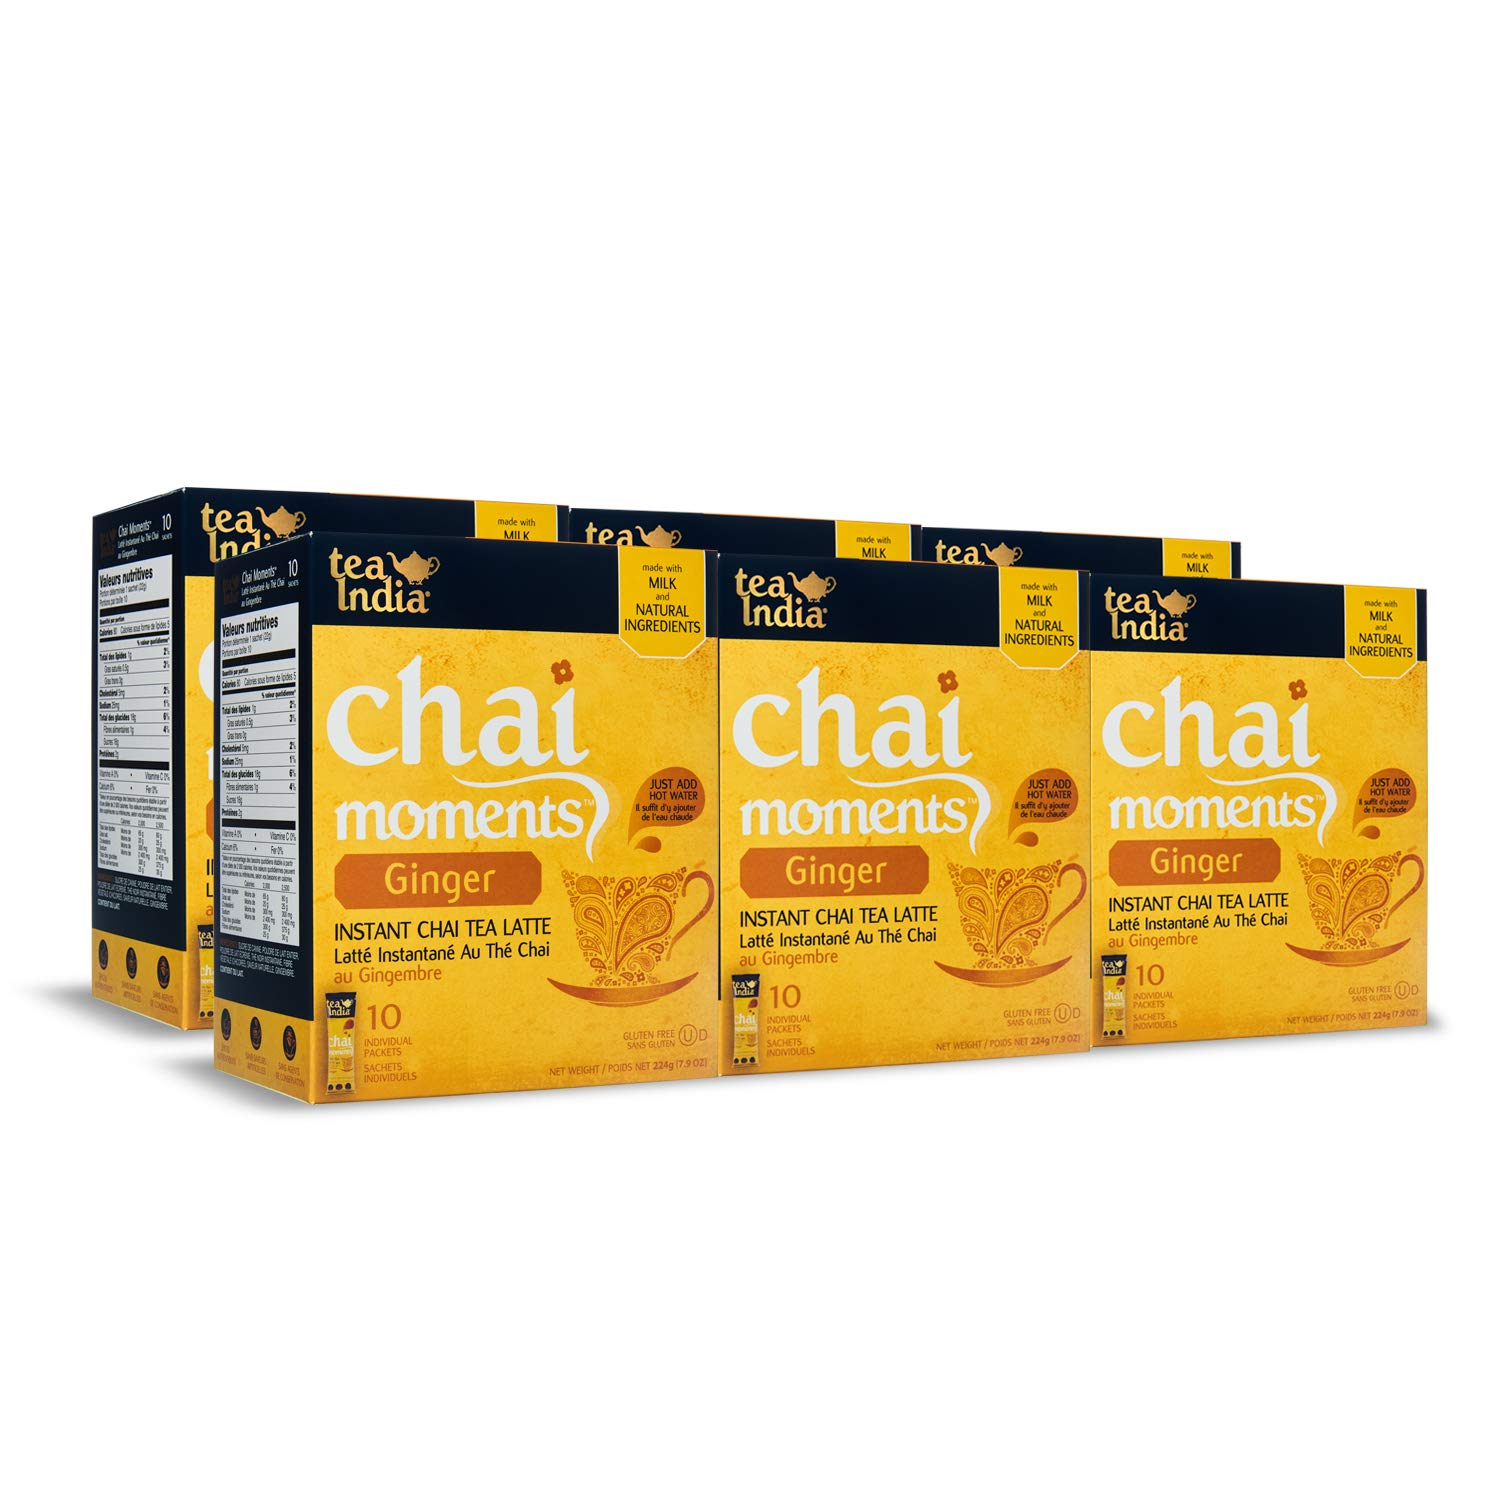 Tea India Chai Moments, Ginger, Instant Chai Tea Latte, 10 Count (Pack of 6)